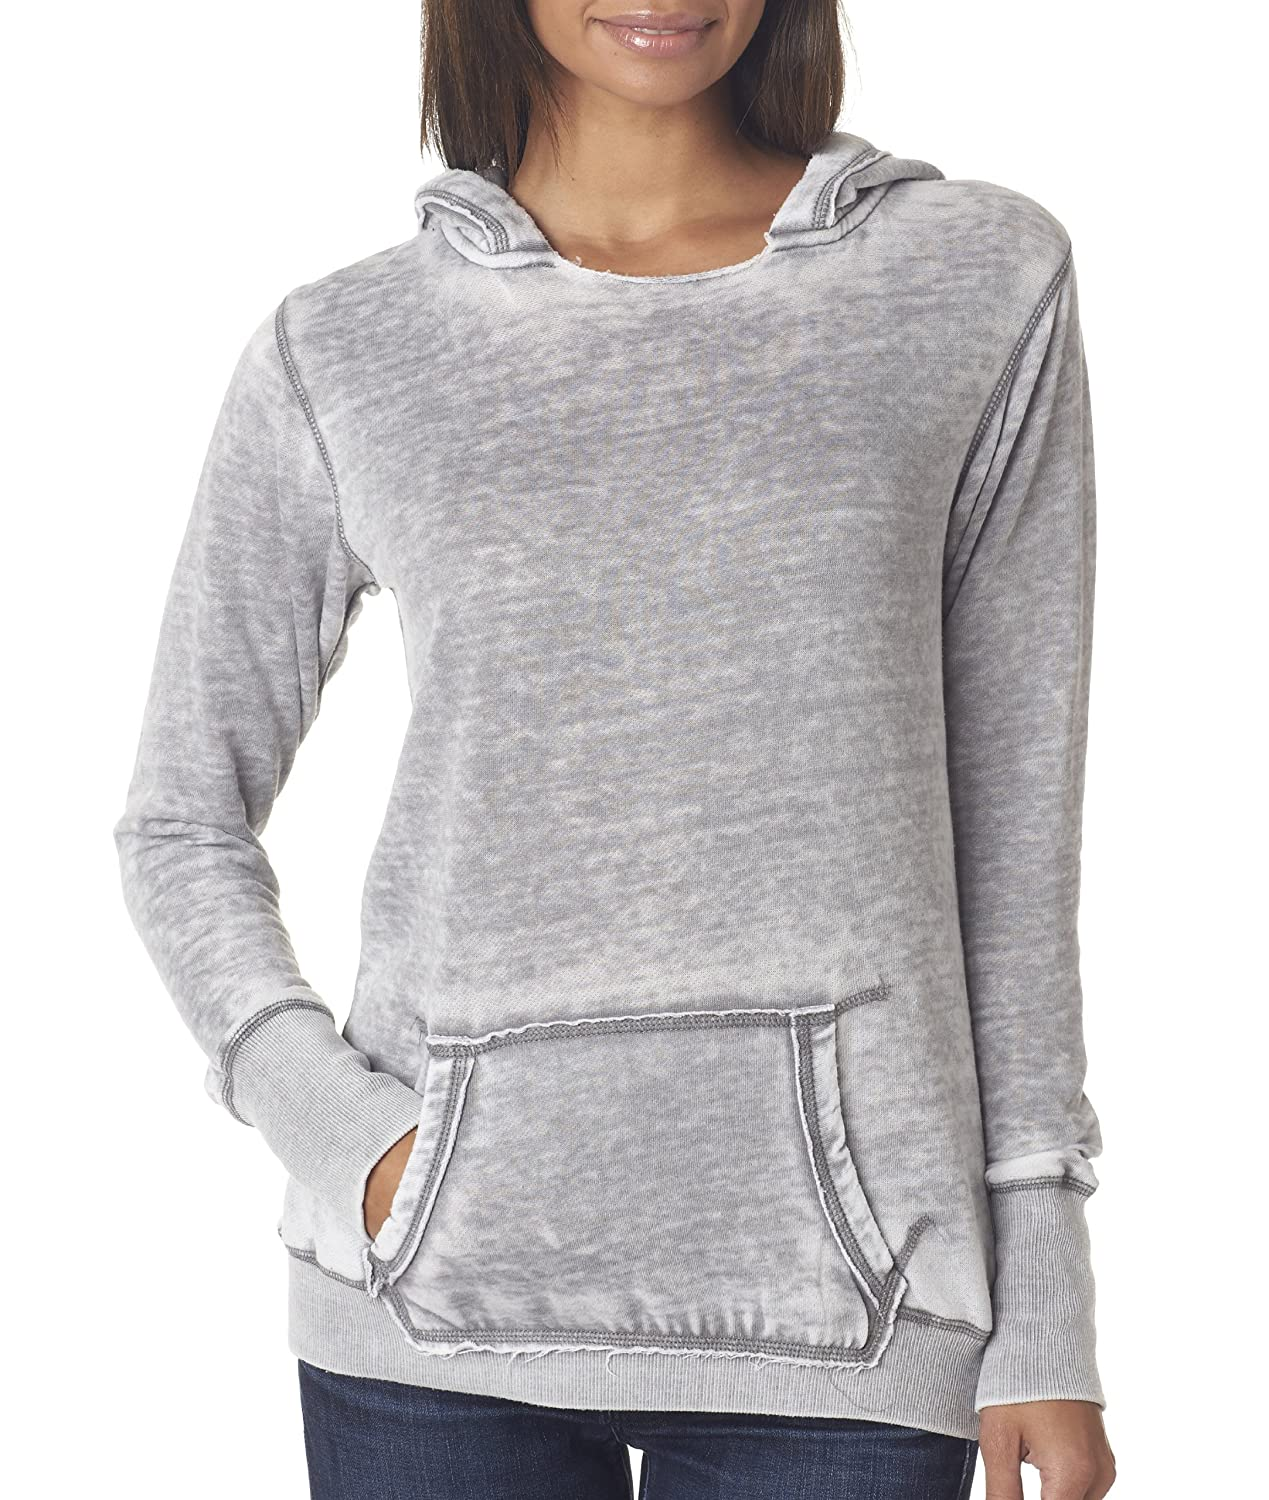 9d55f8436 Top 10 wholesale Design Fleece Pullover - Chinabrands.com